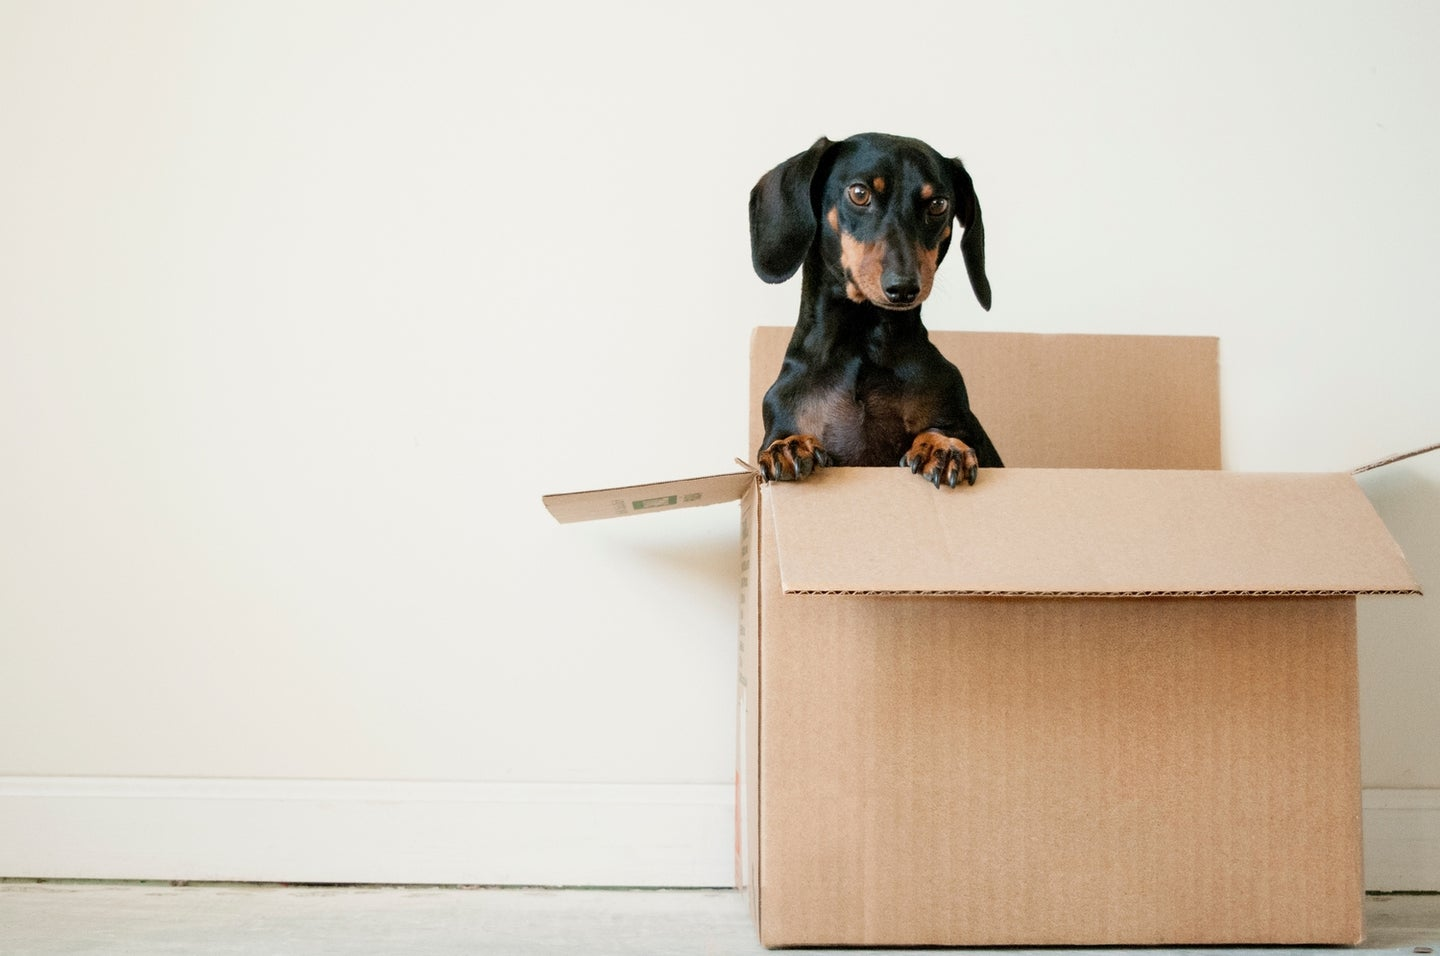 Where to find cardboard boxes when you're moving